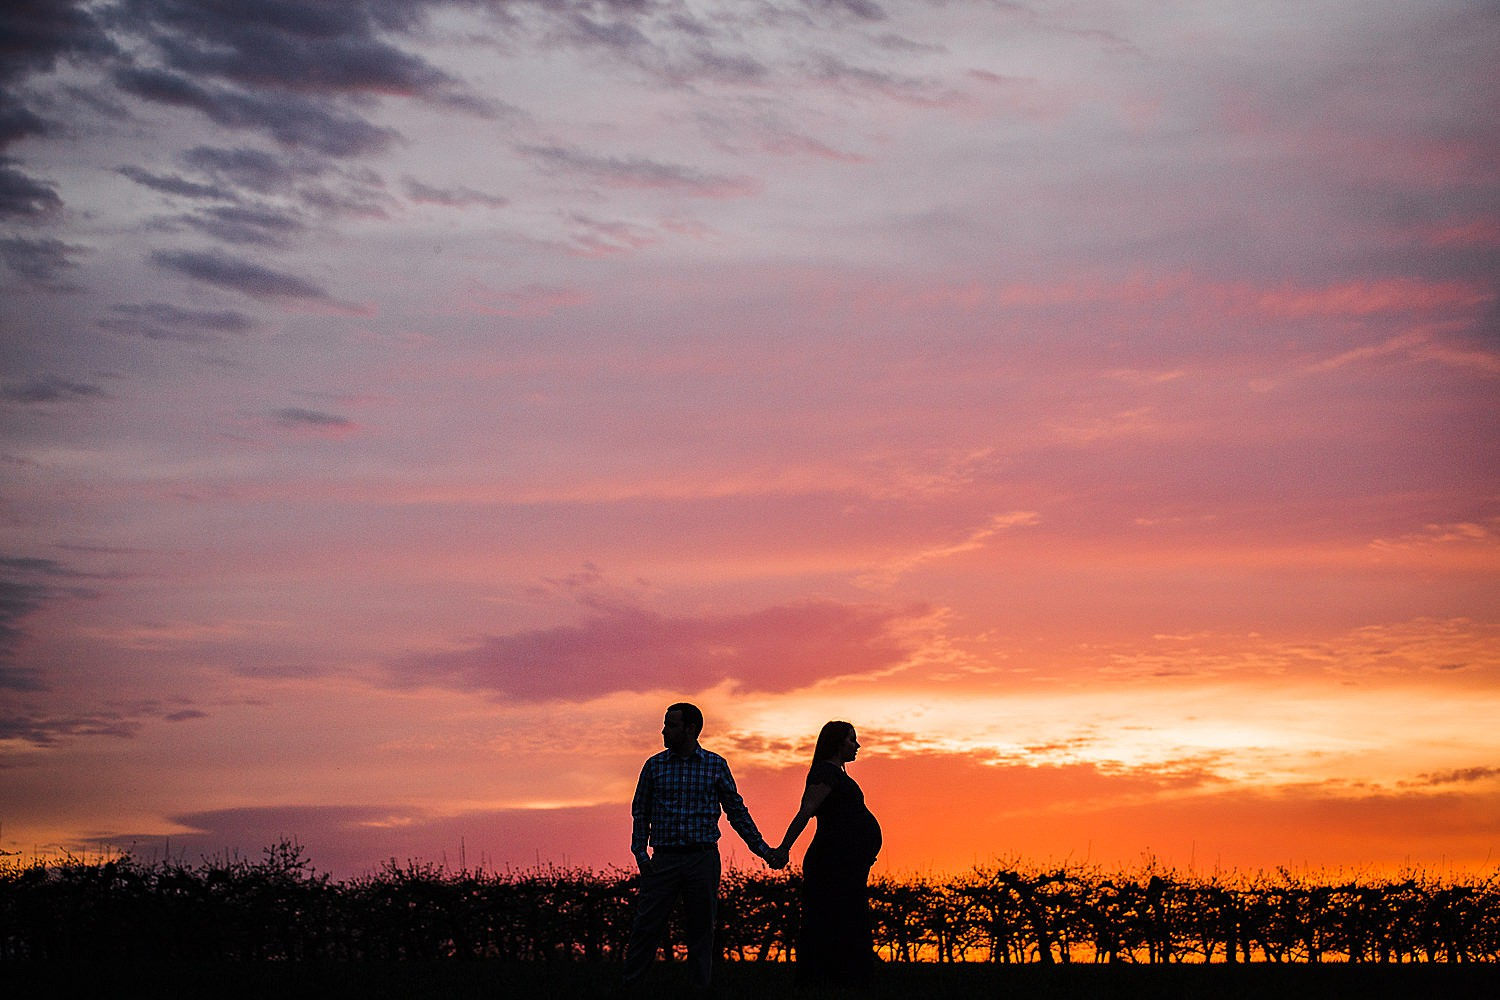 Silhouette photo of a pregnant woman walking with her husband in an orchard at sunset.